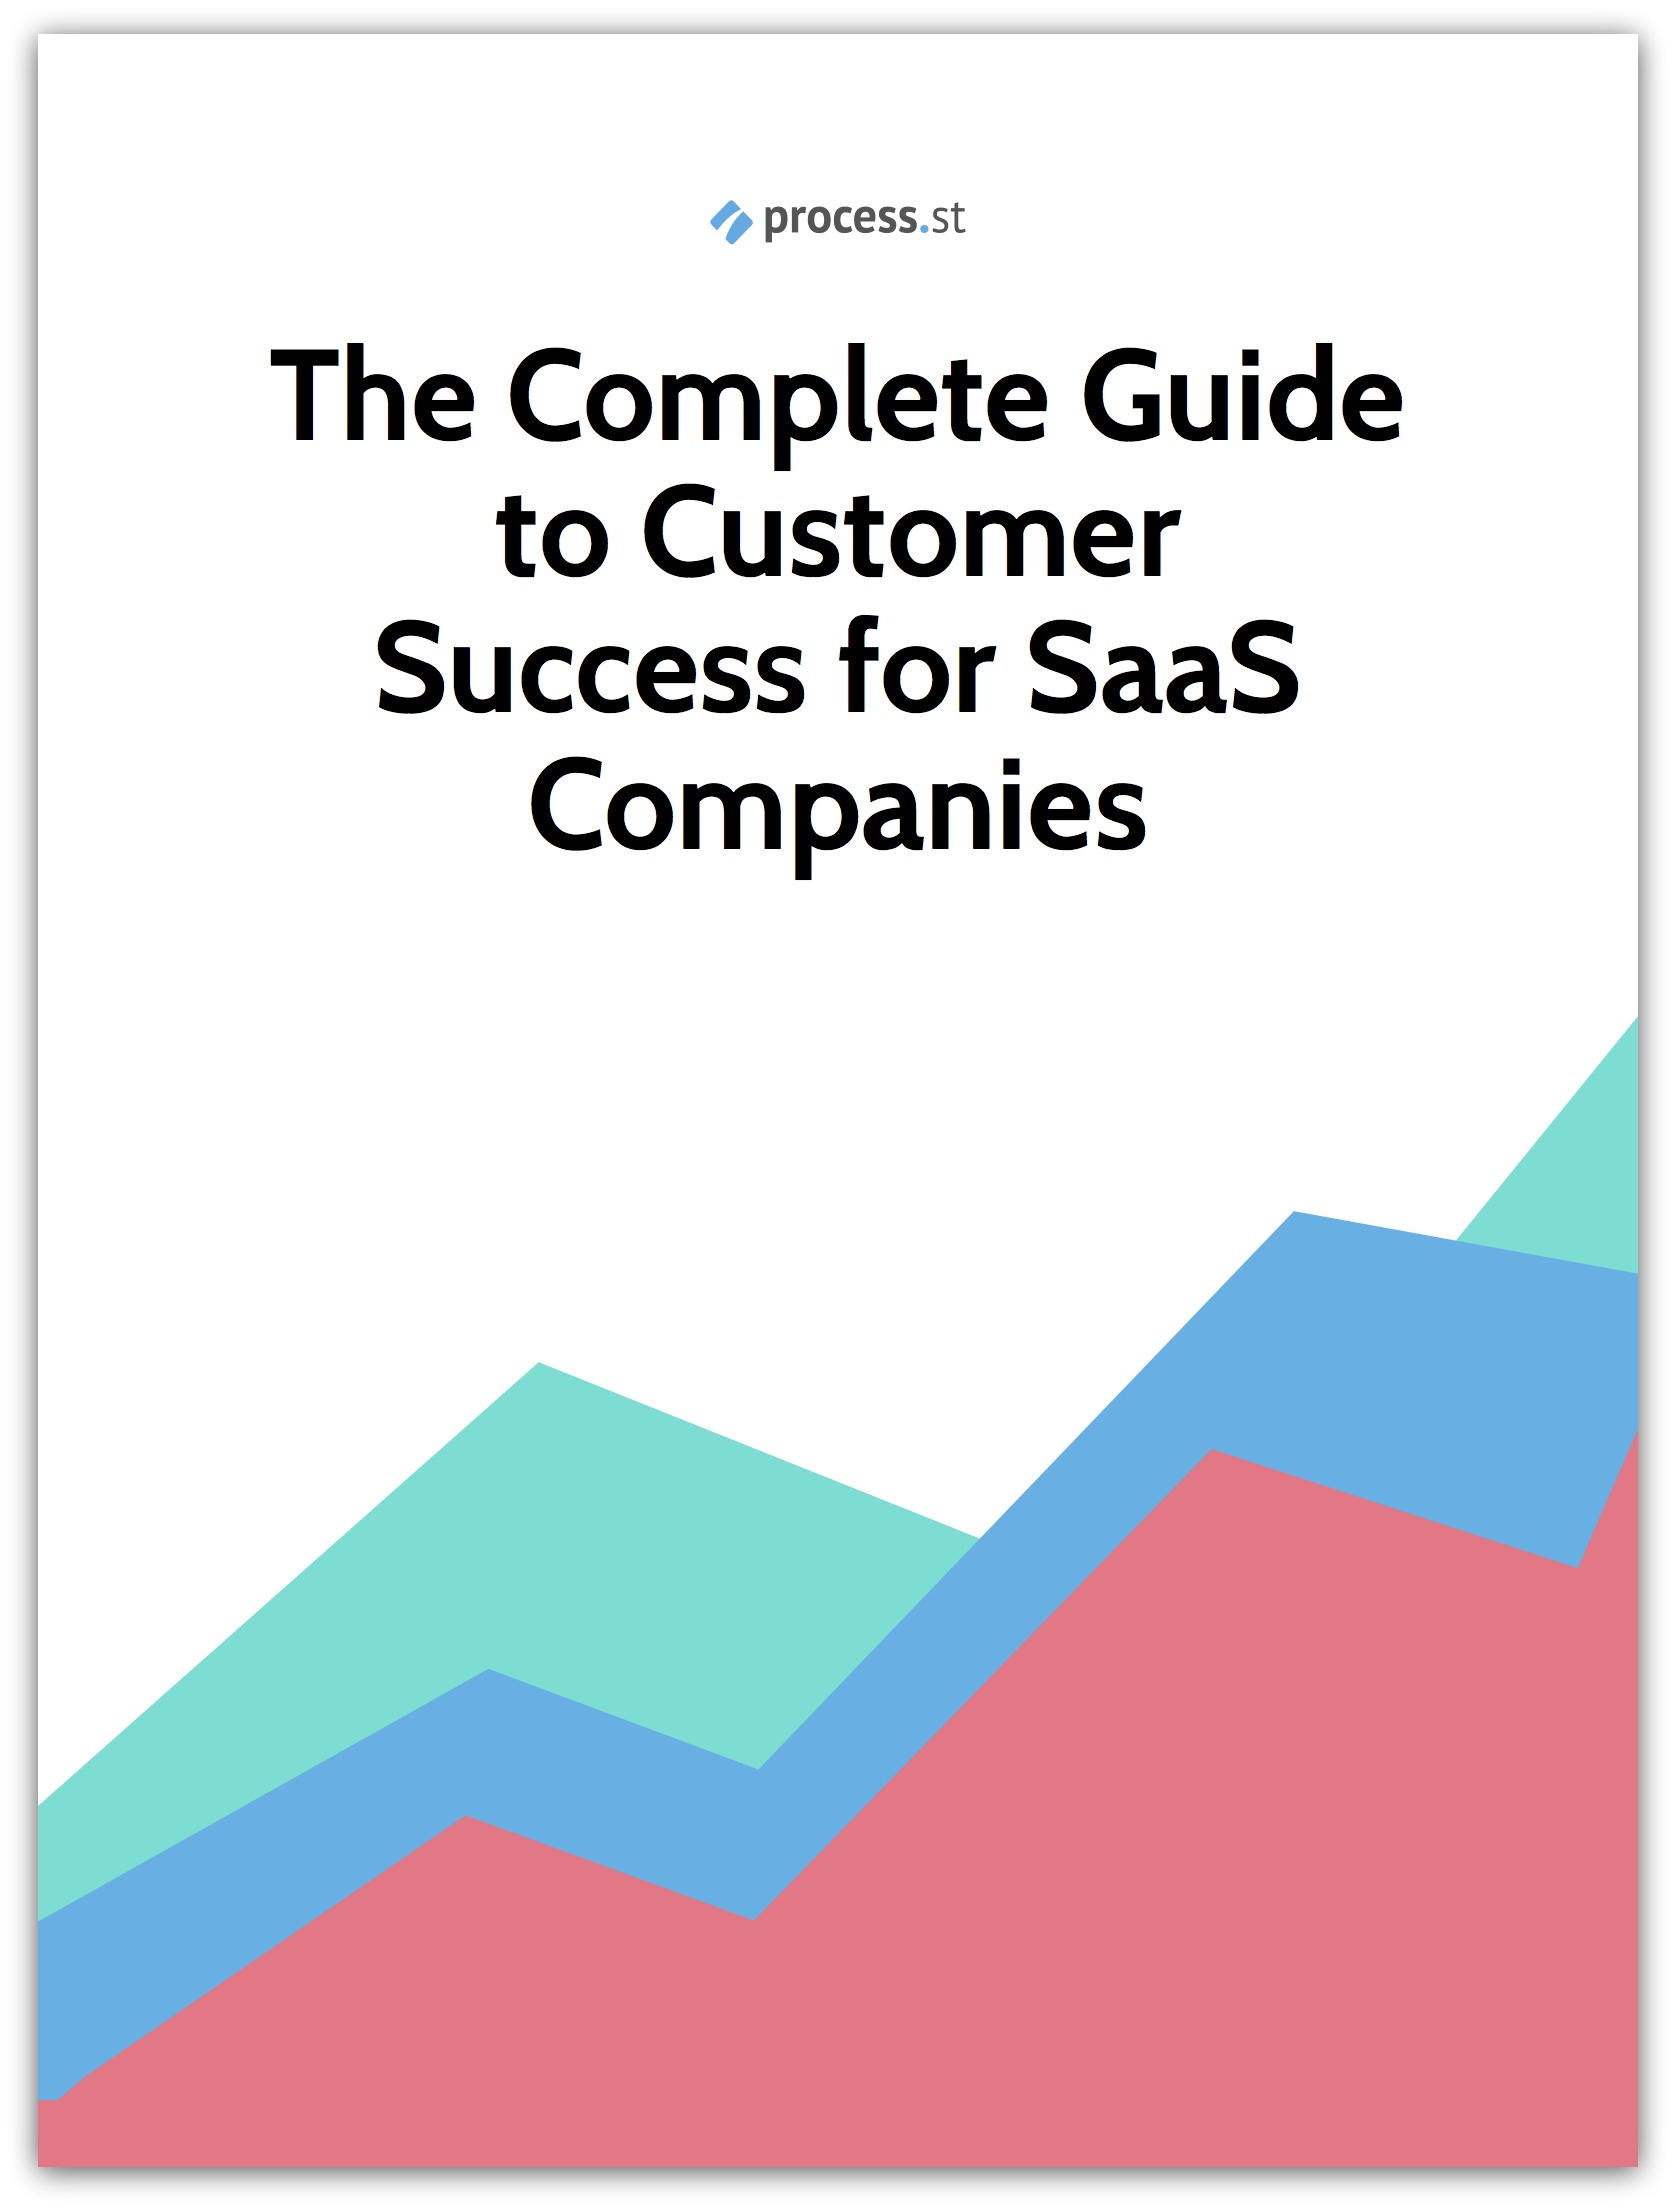 Get the Complete Guide to Customer Success for SaaS: